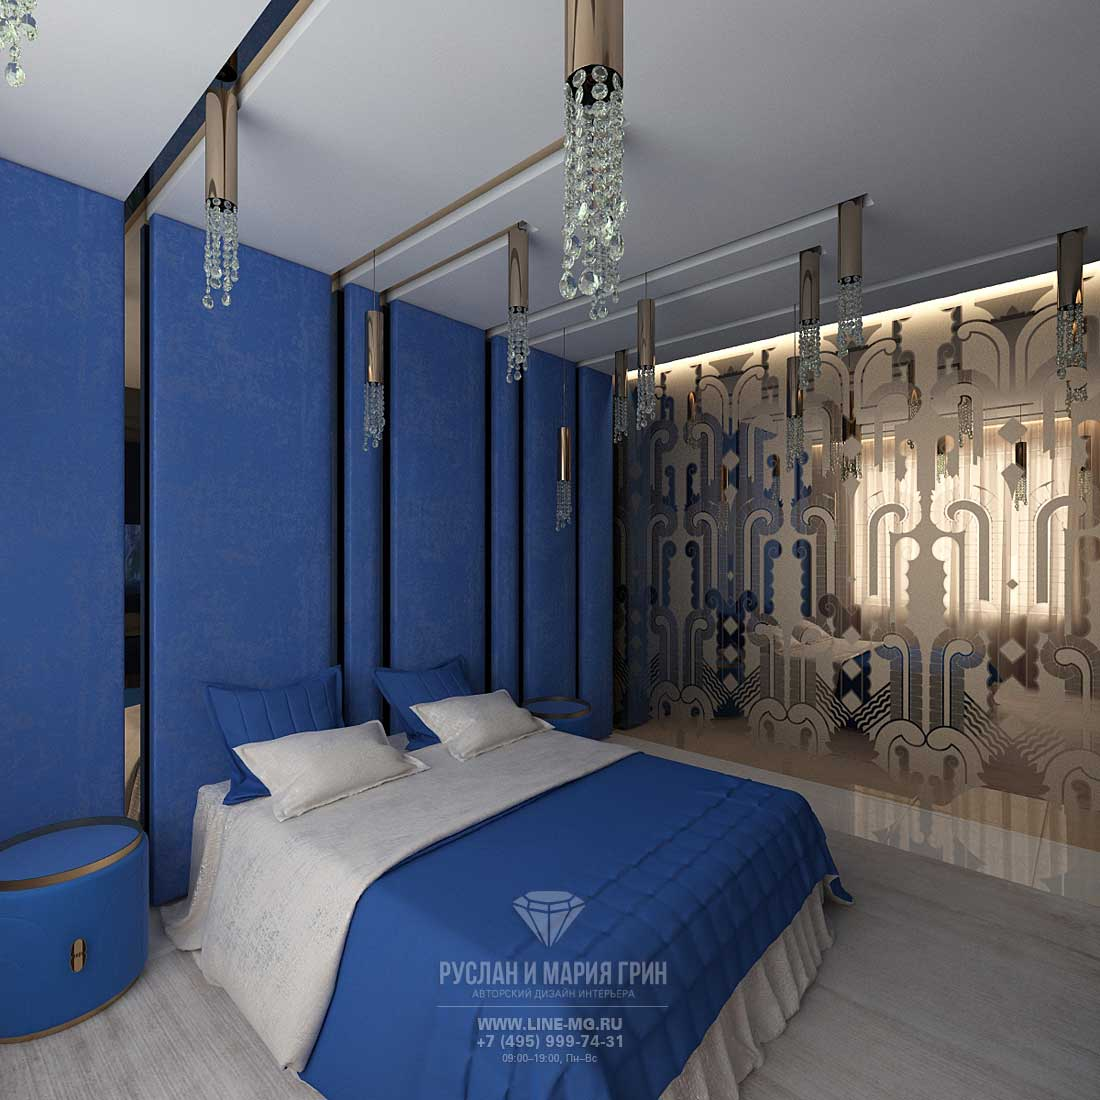 Photo novelty 2015. Design living room bedroom in the house